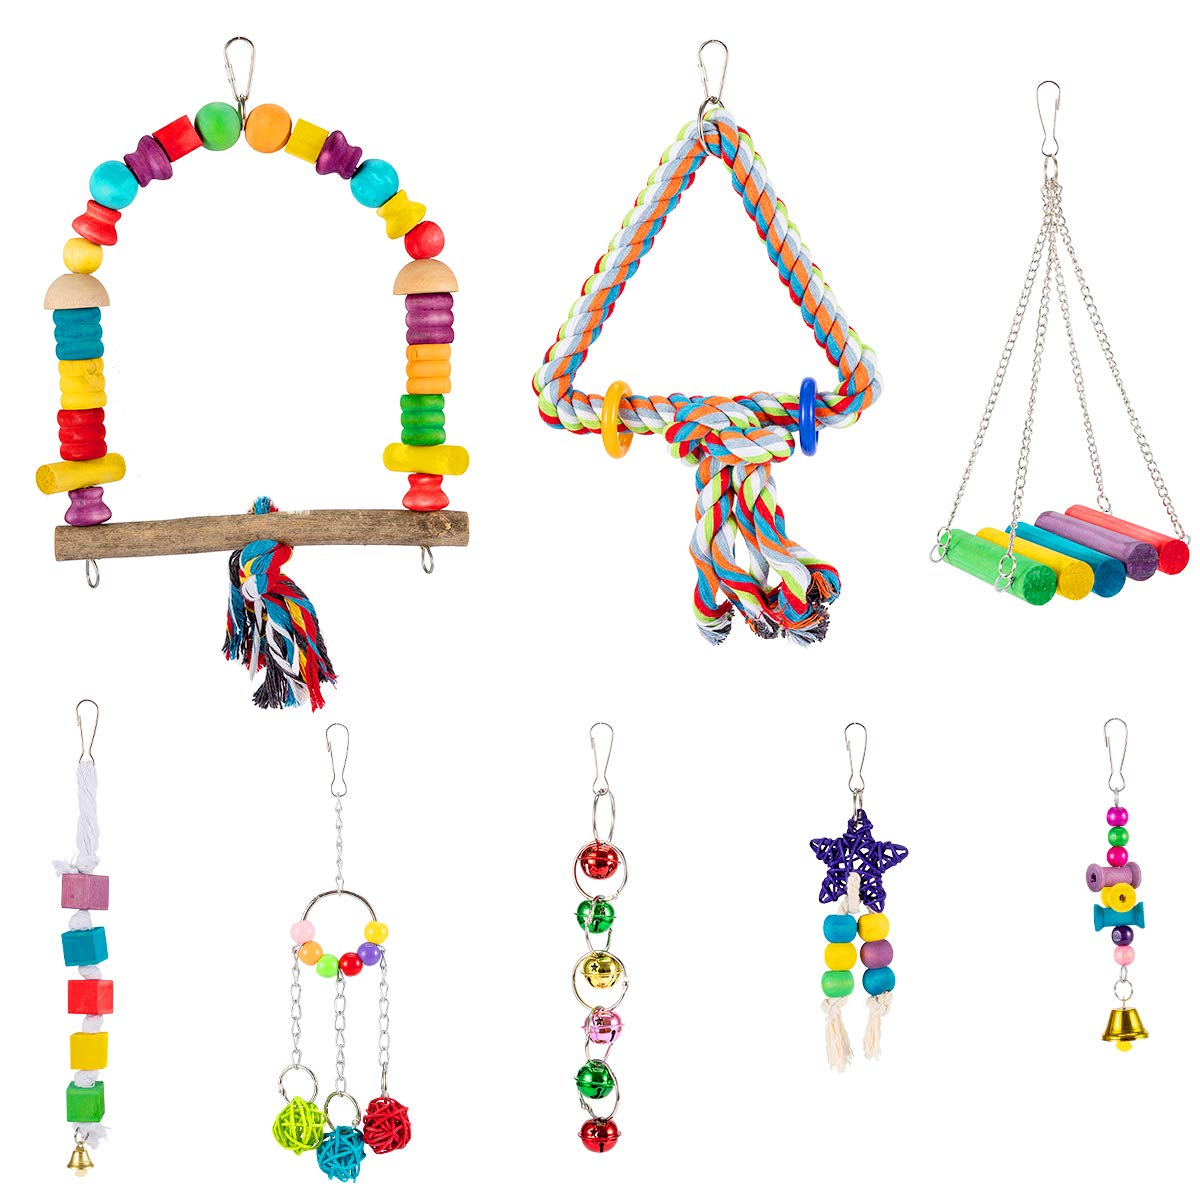 MEWTOGO 8 Pcs Bird Parrot Hanging Swing Perches Toys- Colorful Pet Birds Cage Hammock Chewing Toy with Rattan Ball Bells for Small Love Birds Budgie Parakeets Cockatiels Conures Finches Lorikeets by MEWTOGO